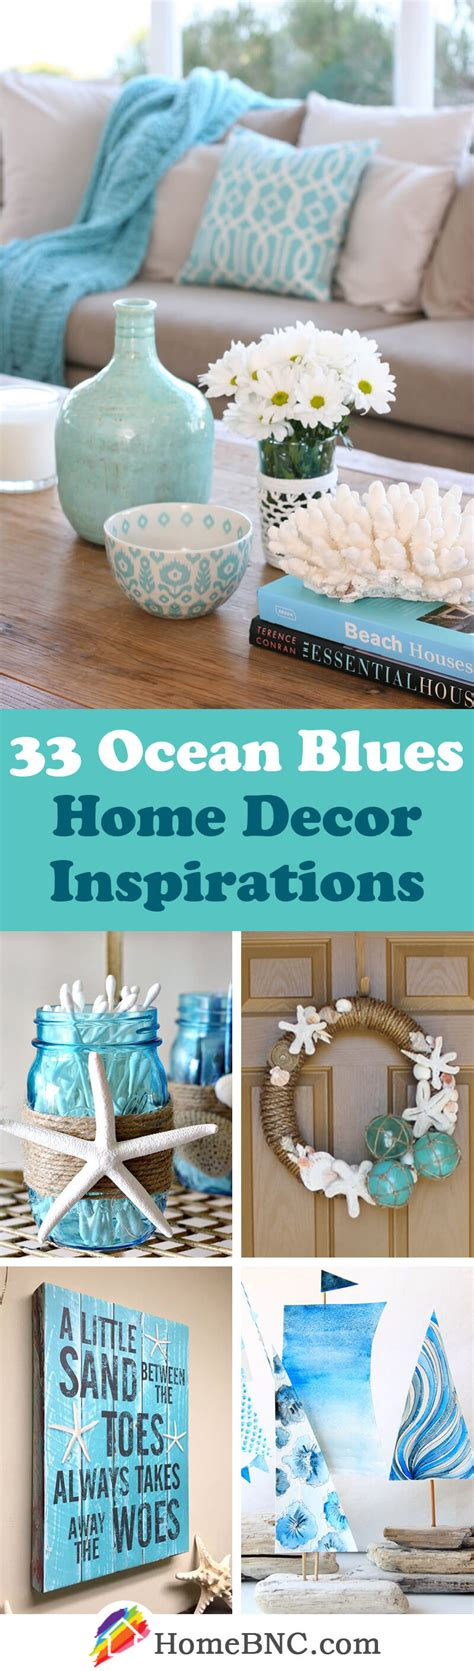 ocean decorations for home 33 best ocean blues home decor inspiration ideas and